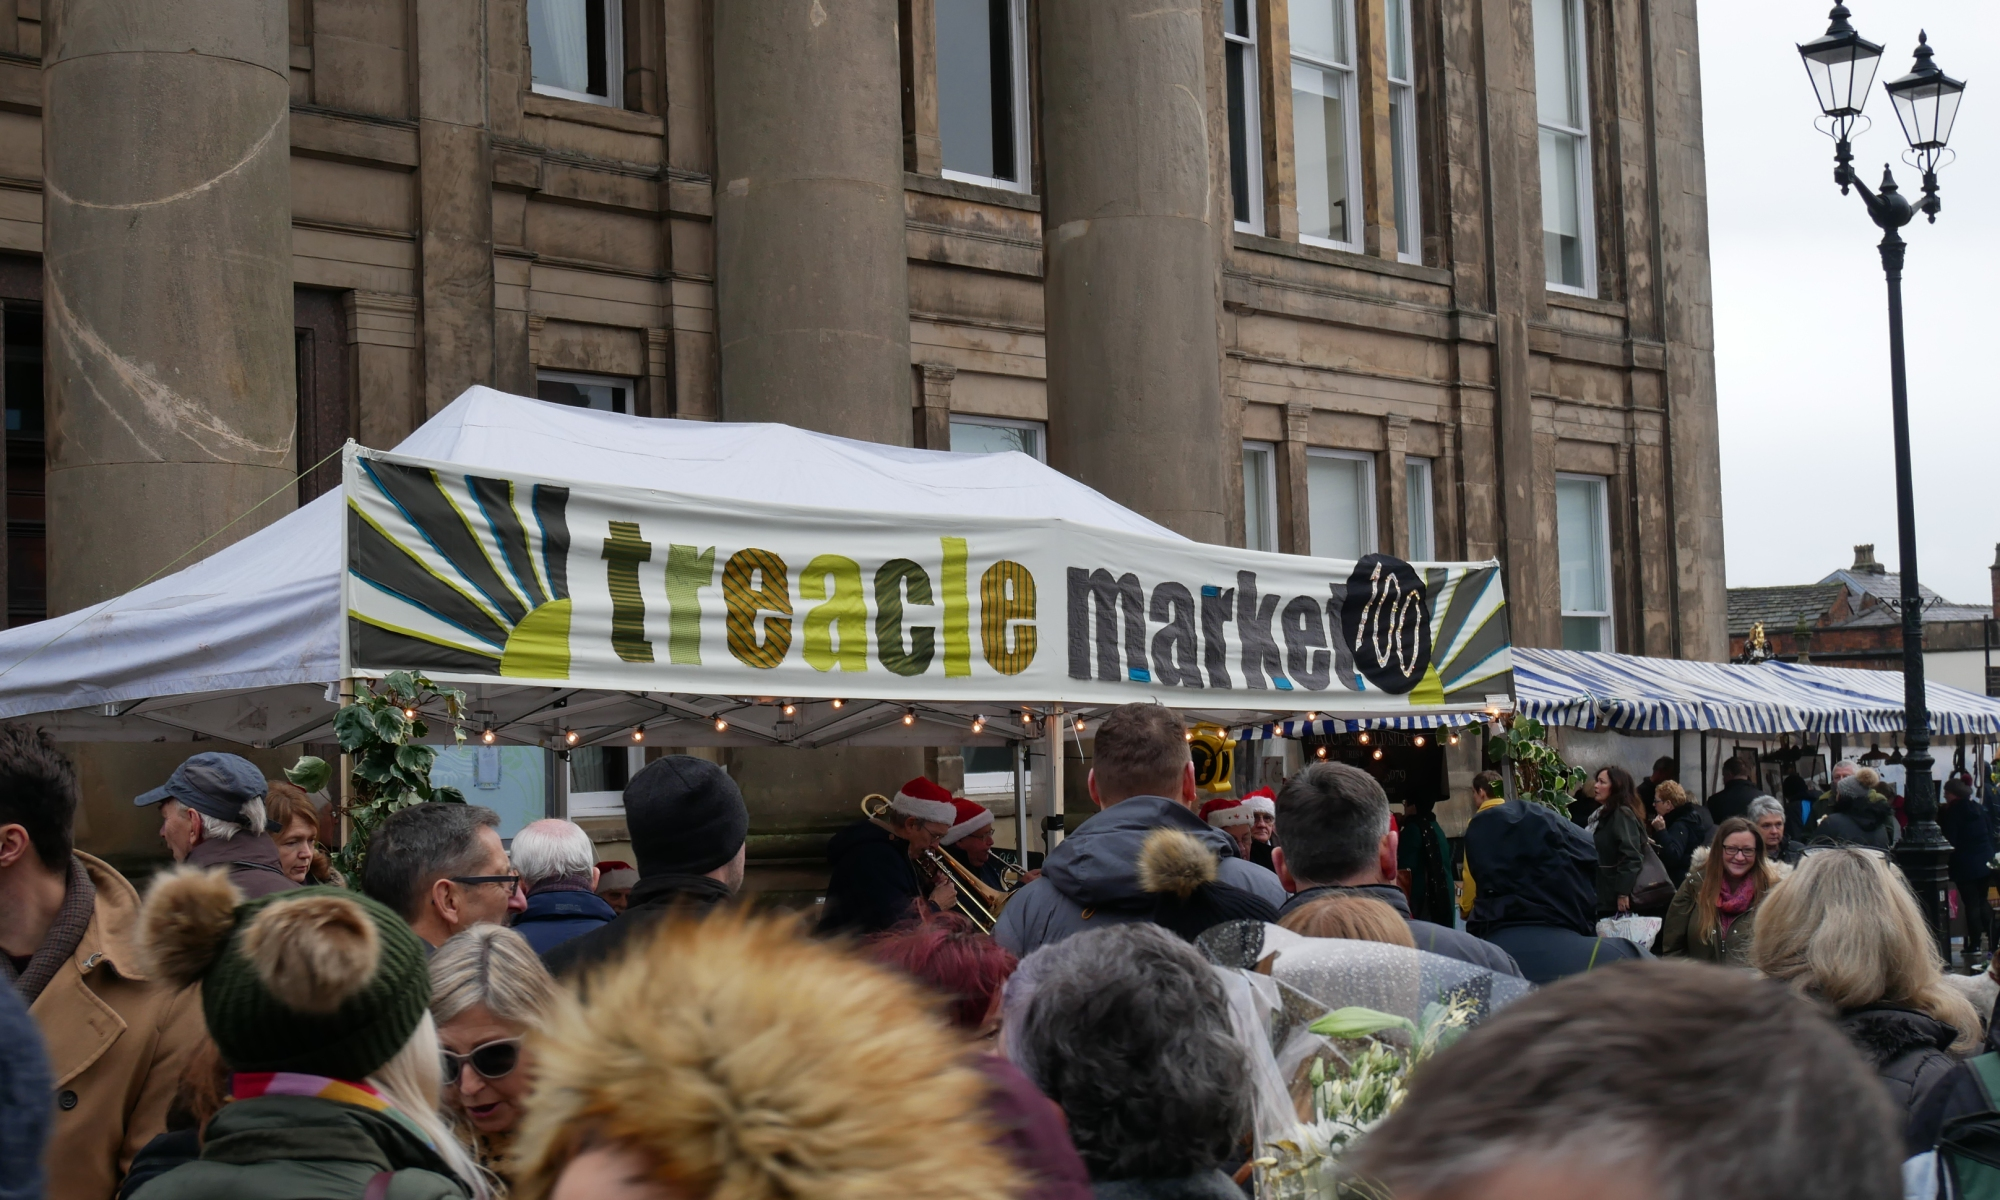 The Treacle Market 100 banner in action